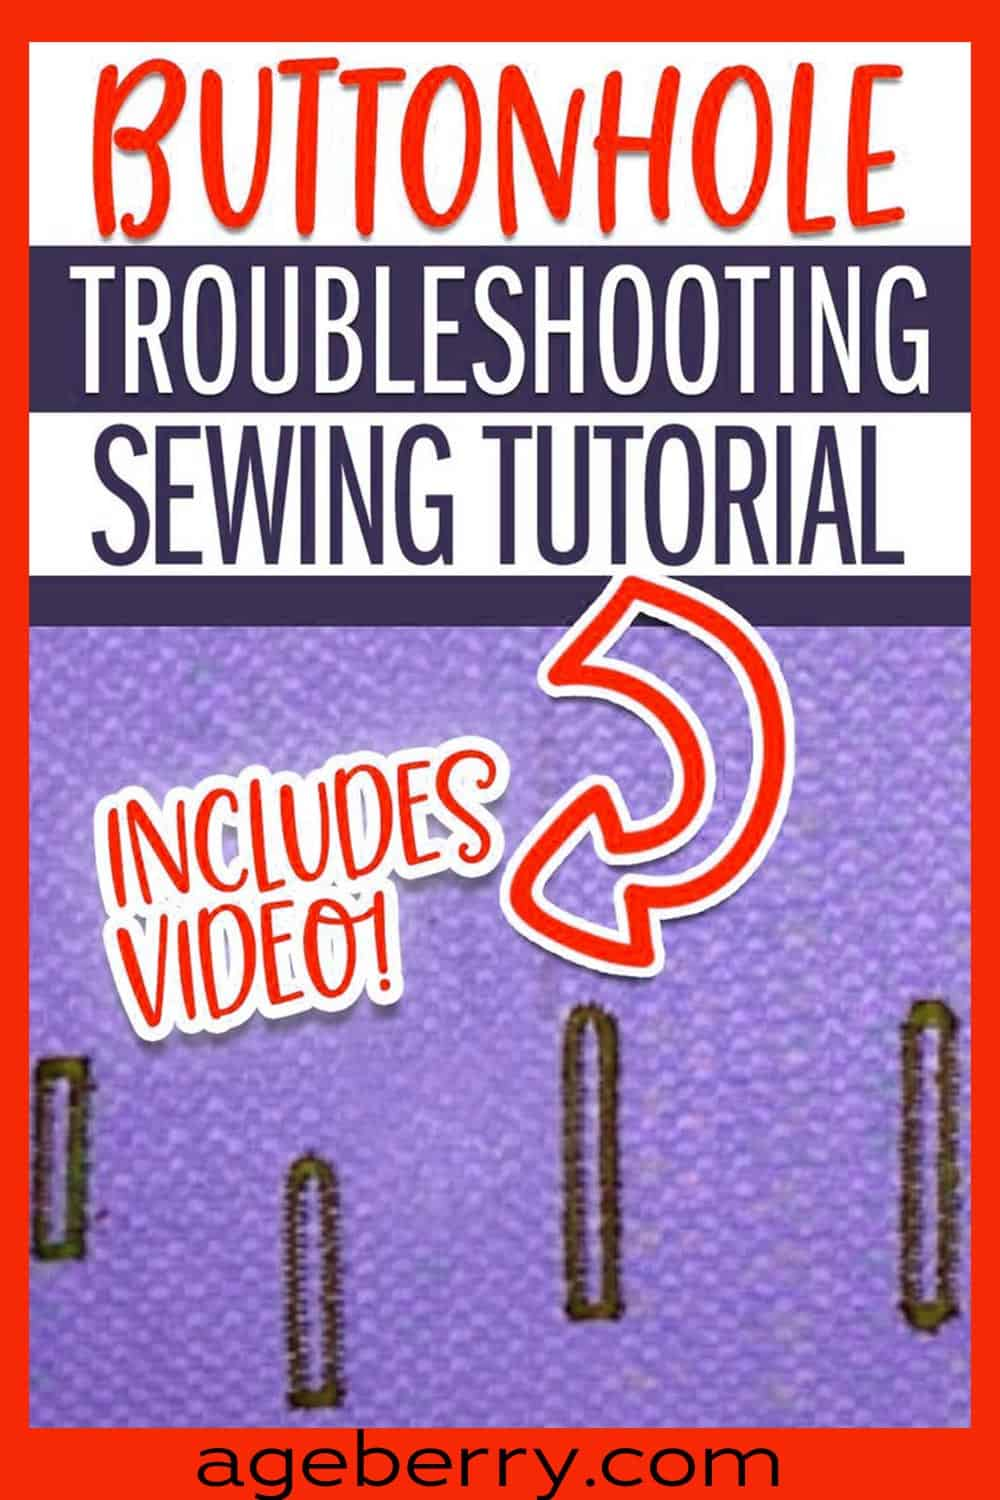 Buttonhole troubleshooting sewing tutorial